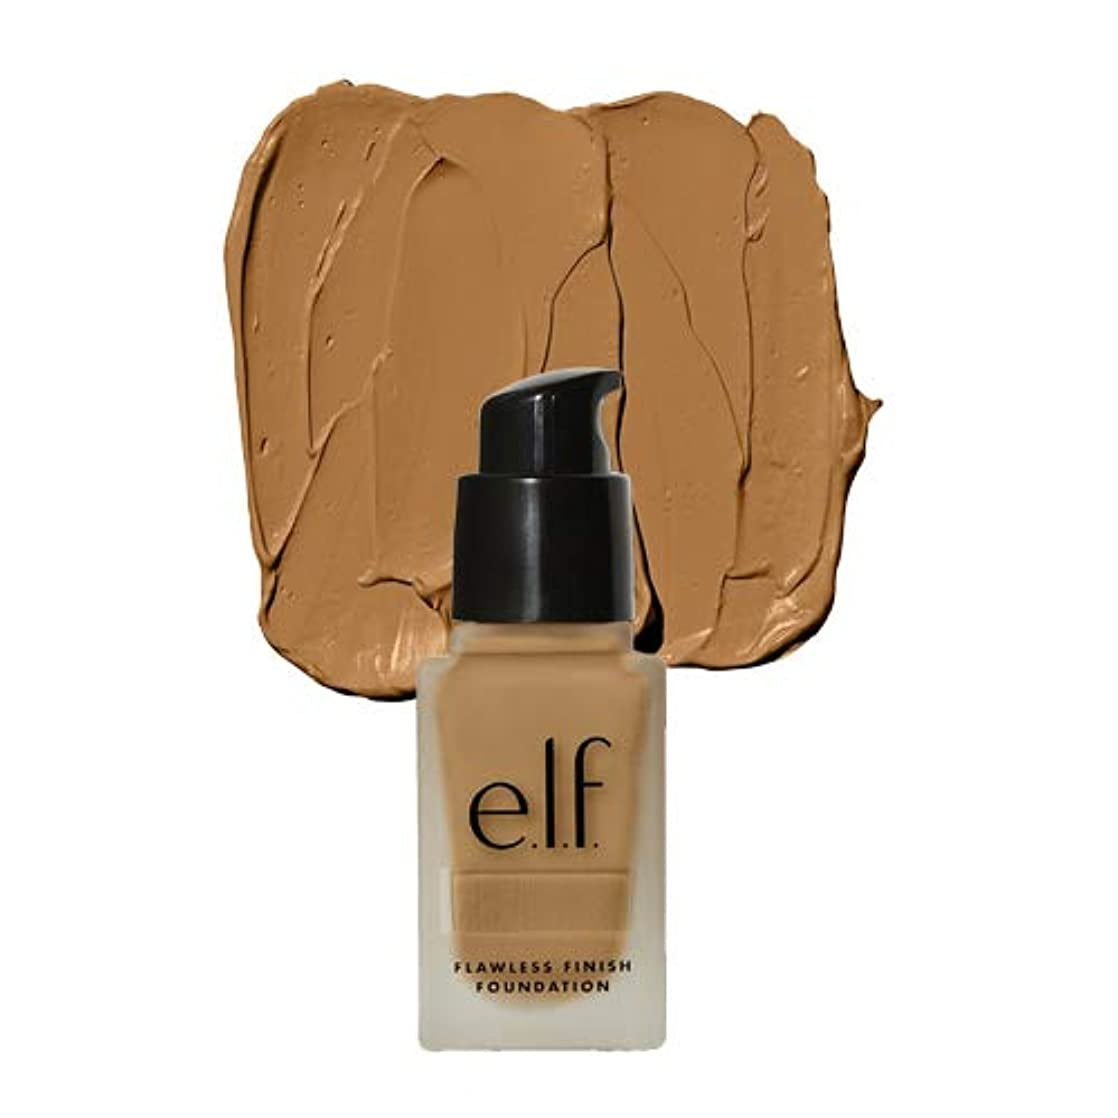 抑圧者王子開業医(3 Pack) e.l.f. Oil Free Flawless Finish Foundation - Linen (並行輸入品)